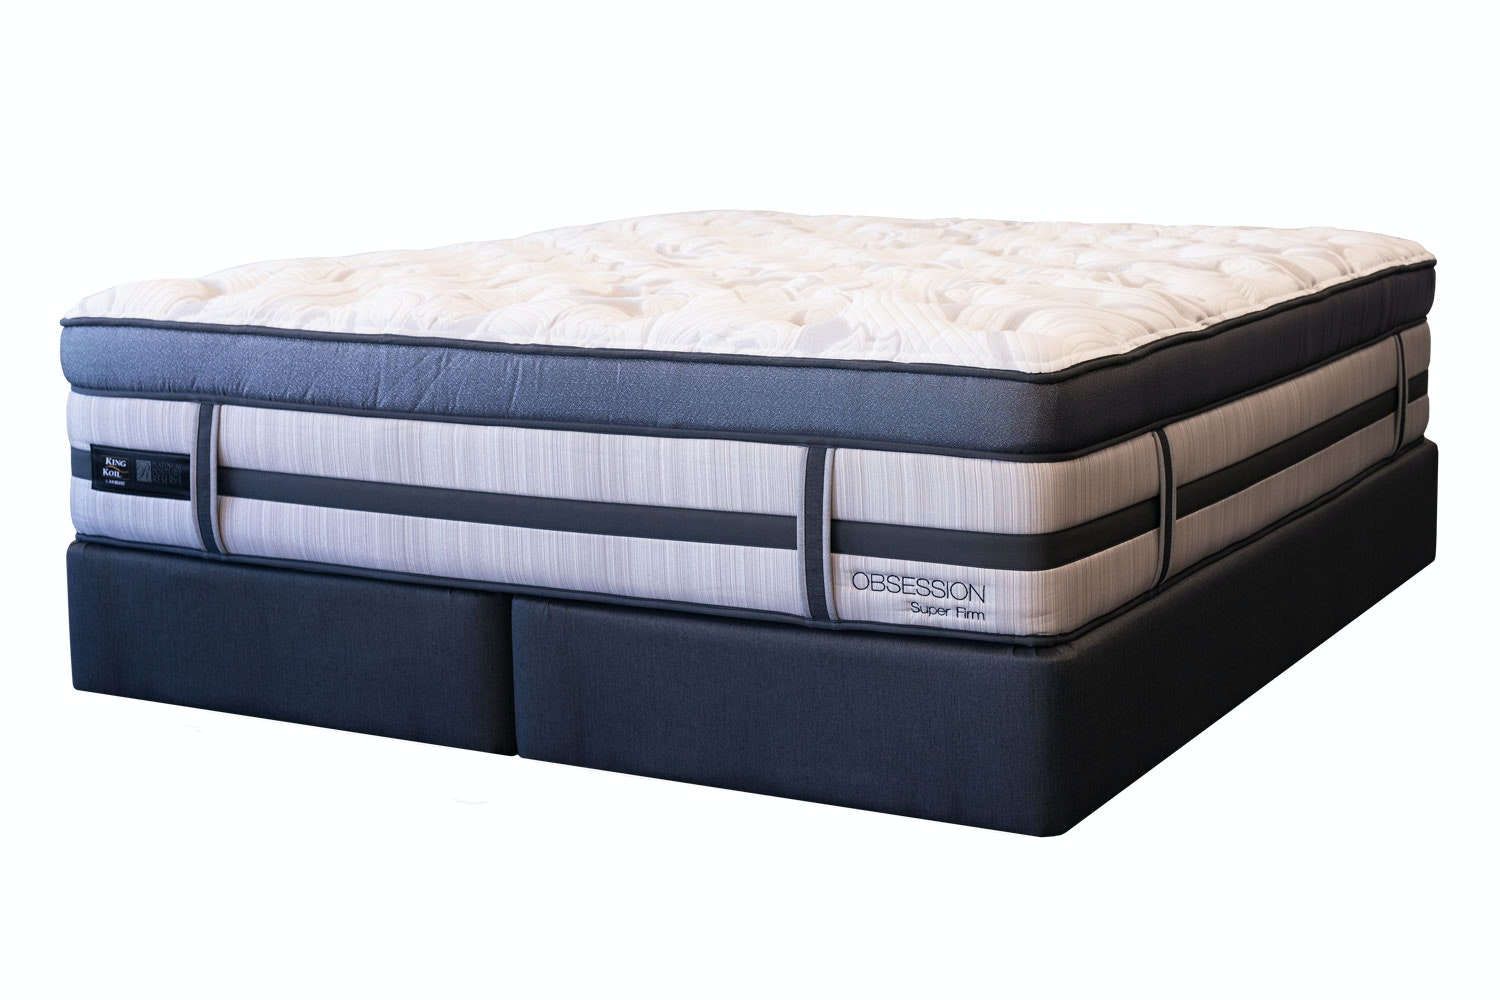 Obsession Super Firm Queen Bed by King Koil